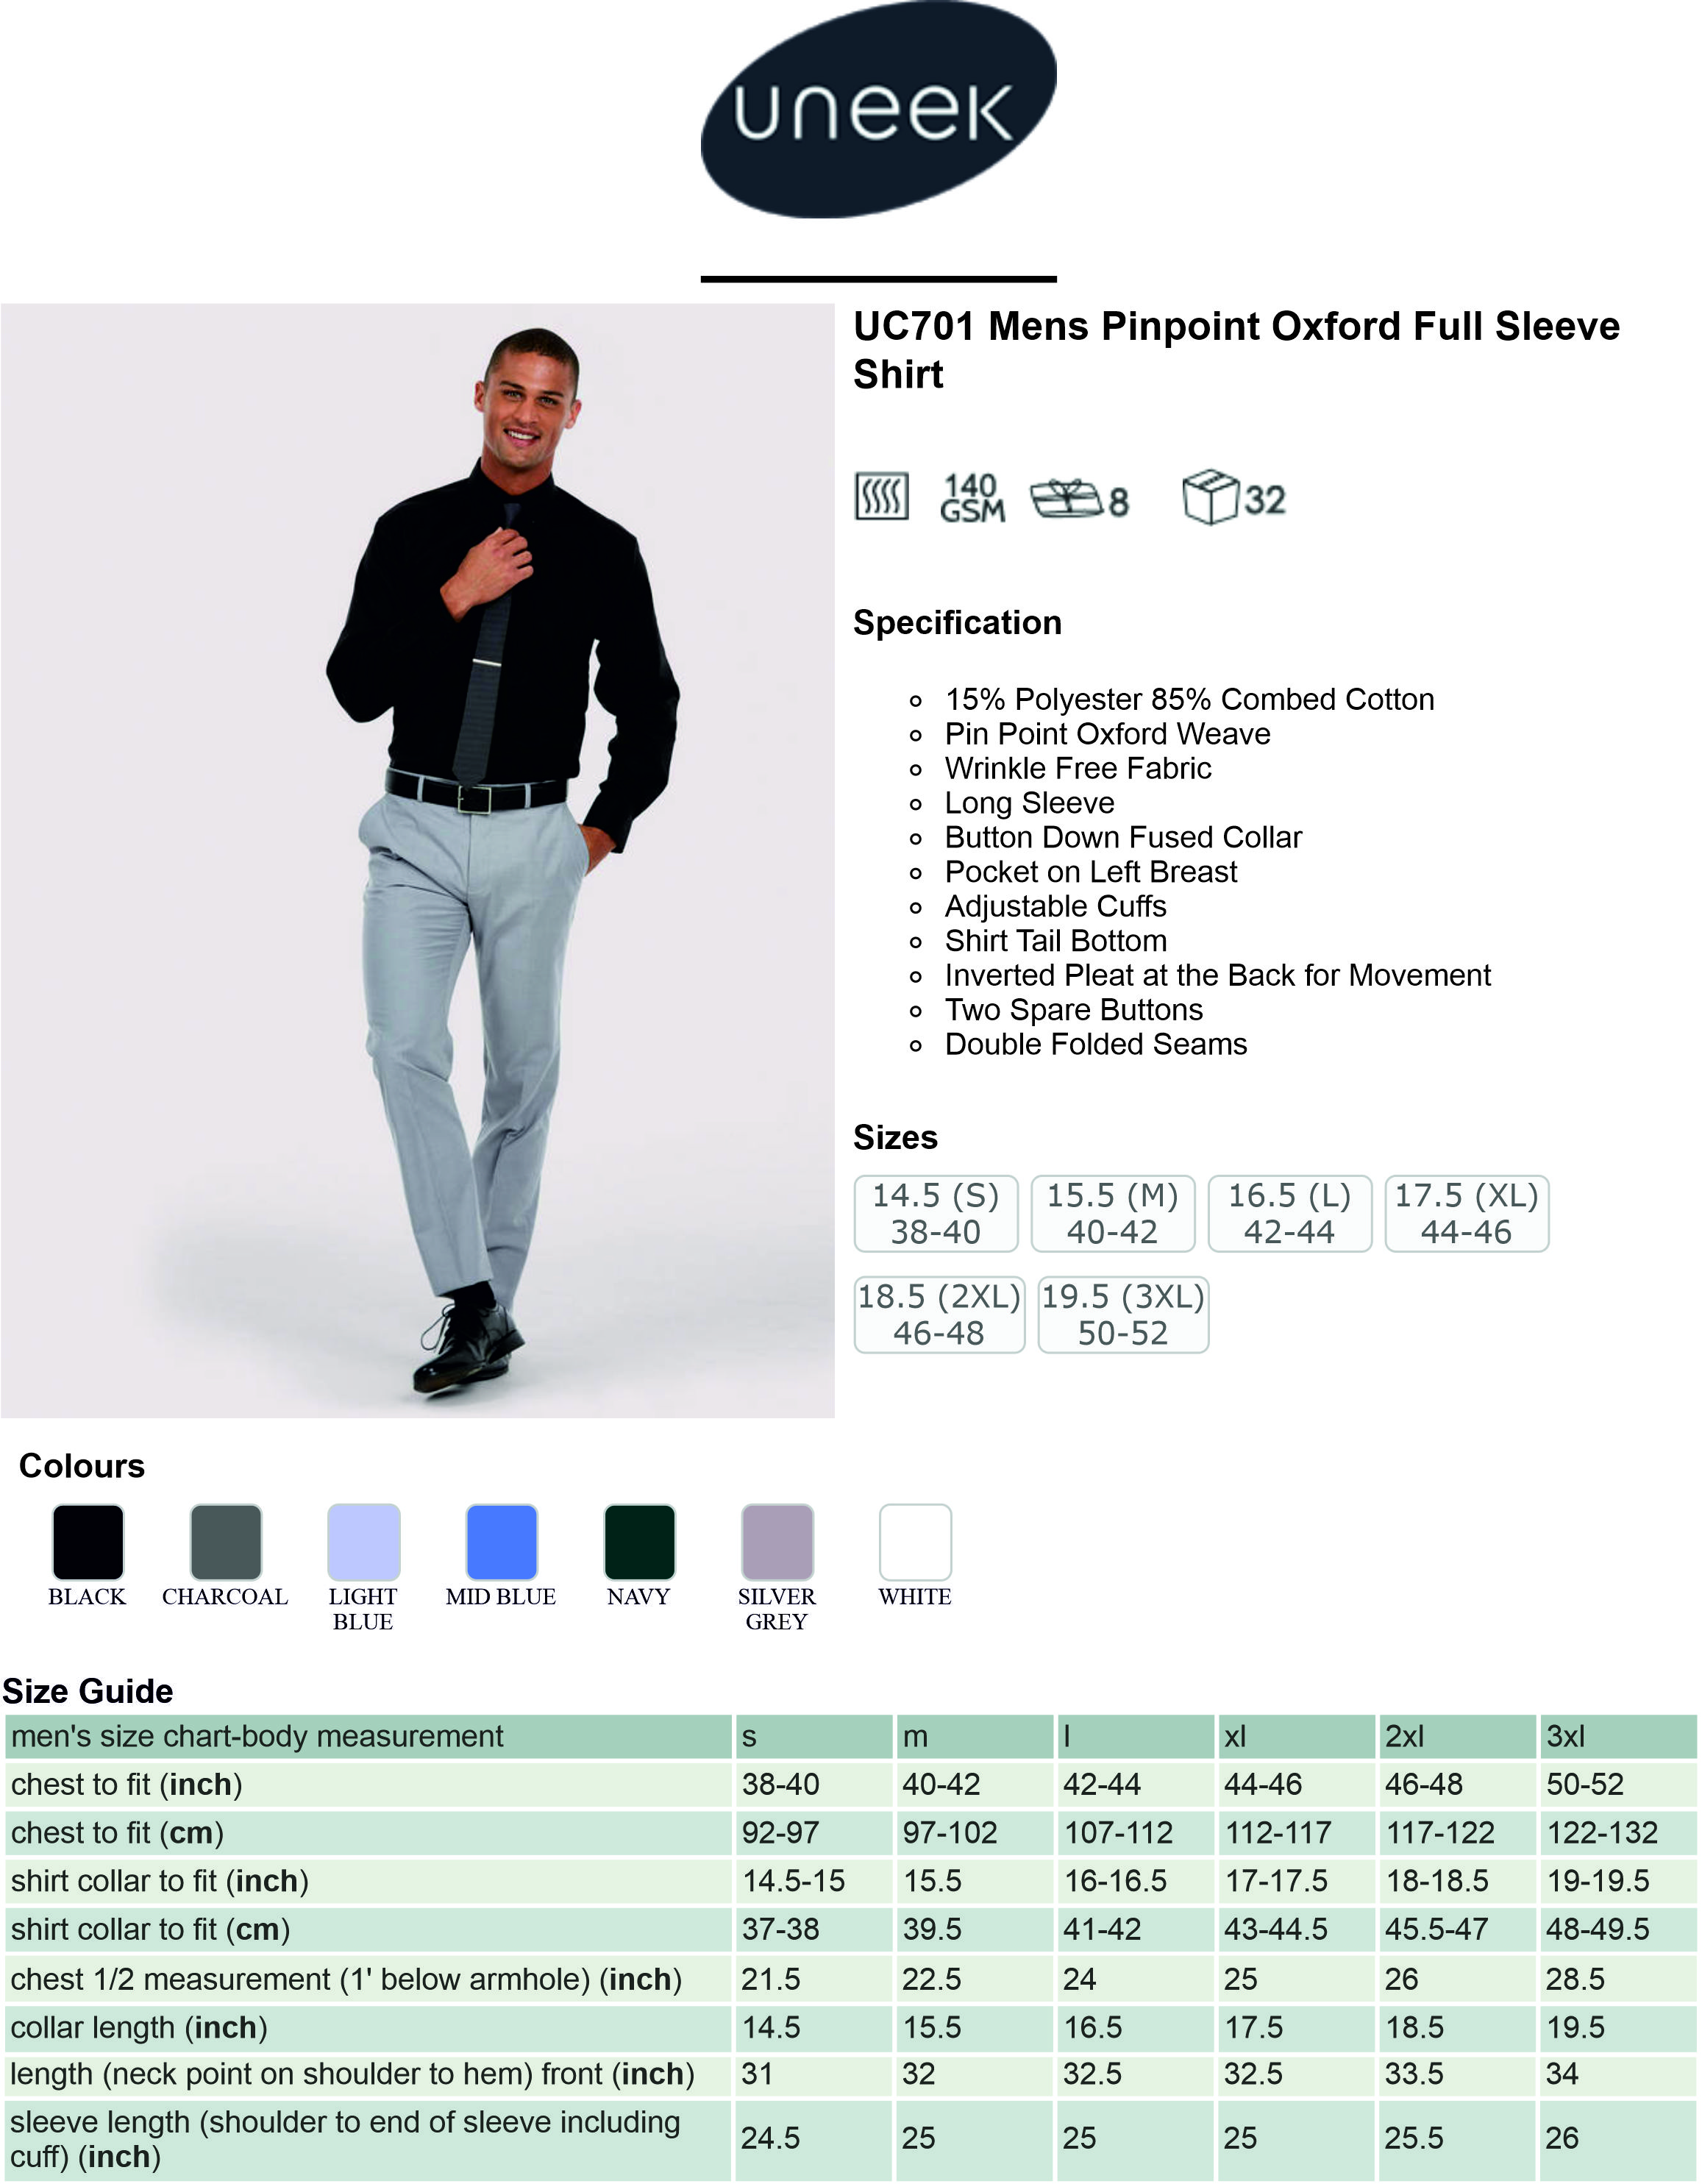 UC701 Mens Pin Point Oxford Full Sleeve Shirt Spec Sheet.jpg